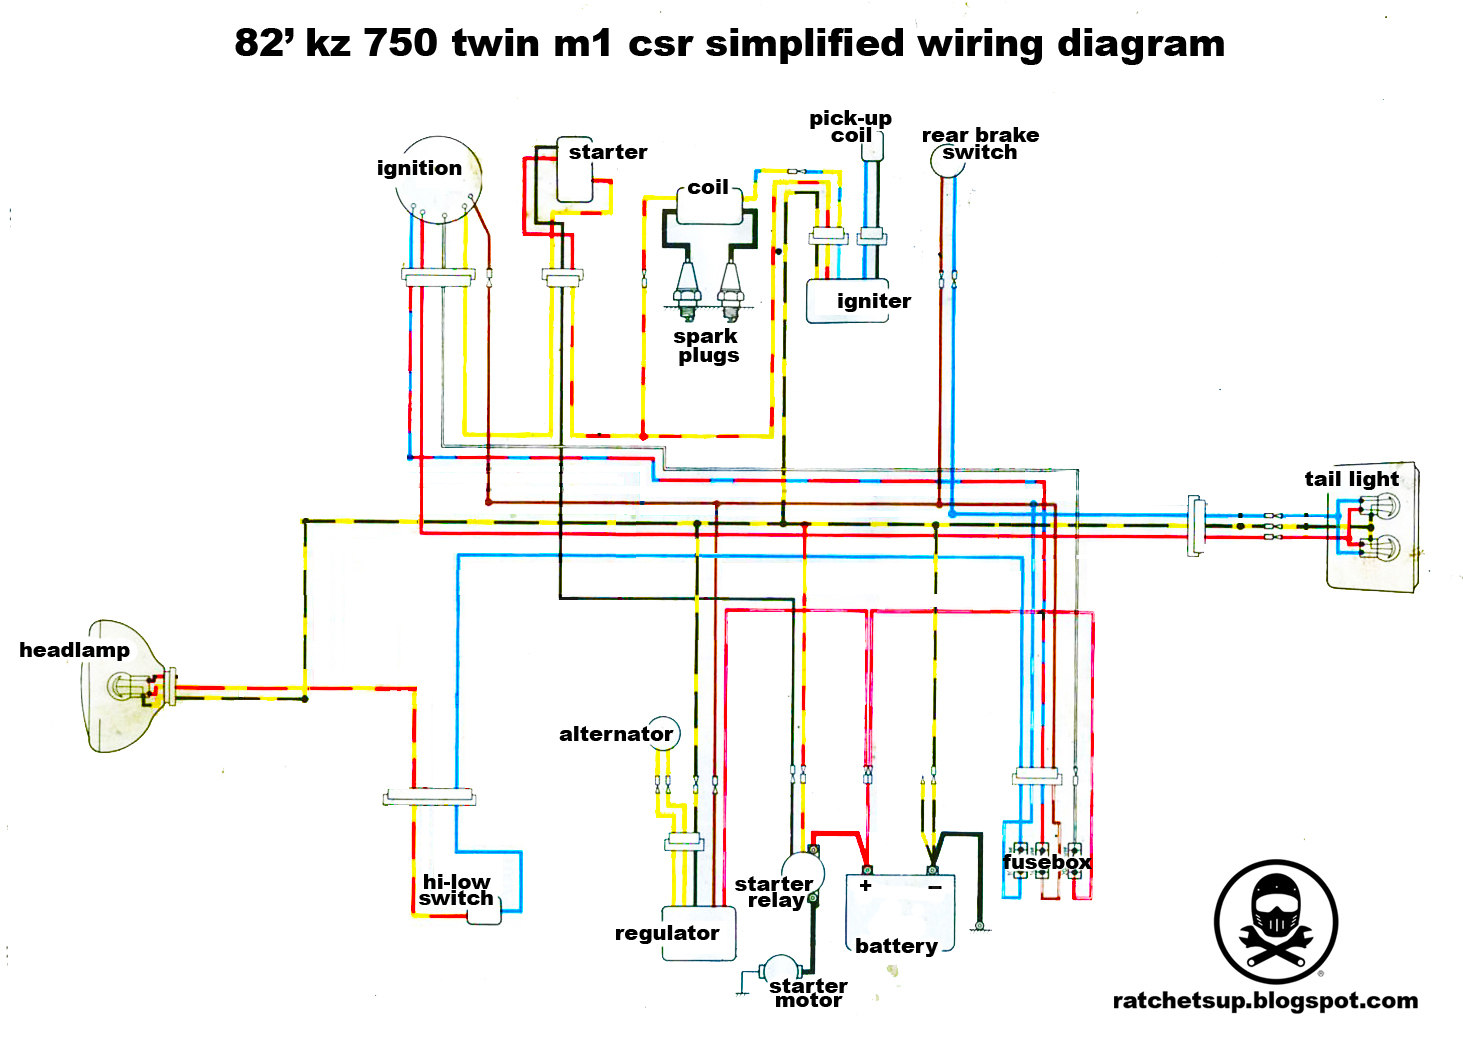 1981 Kawasaki Kz750 Wiring Harness 34 Diagram Images Simple Simplified Minimal Csr Kzrider Forum